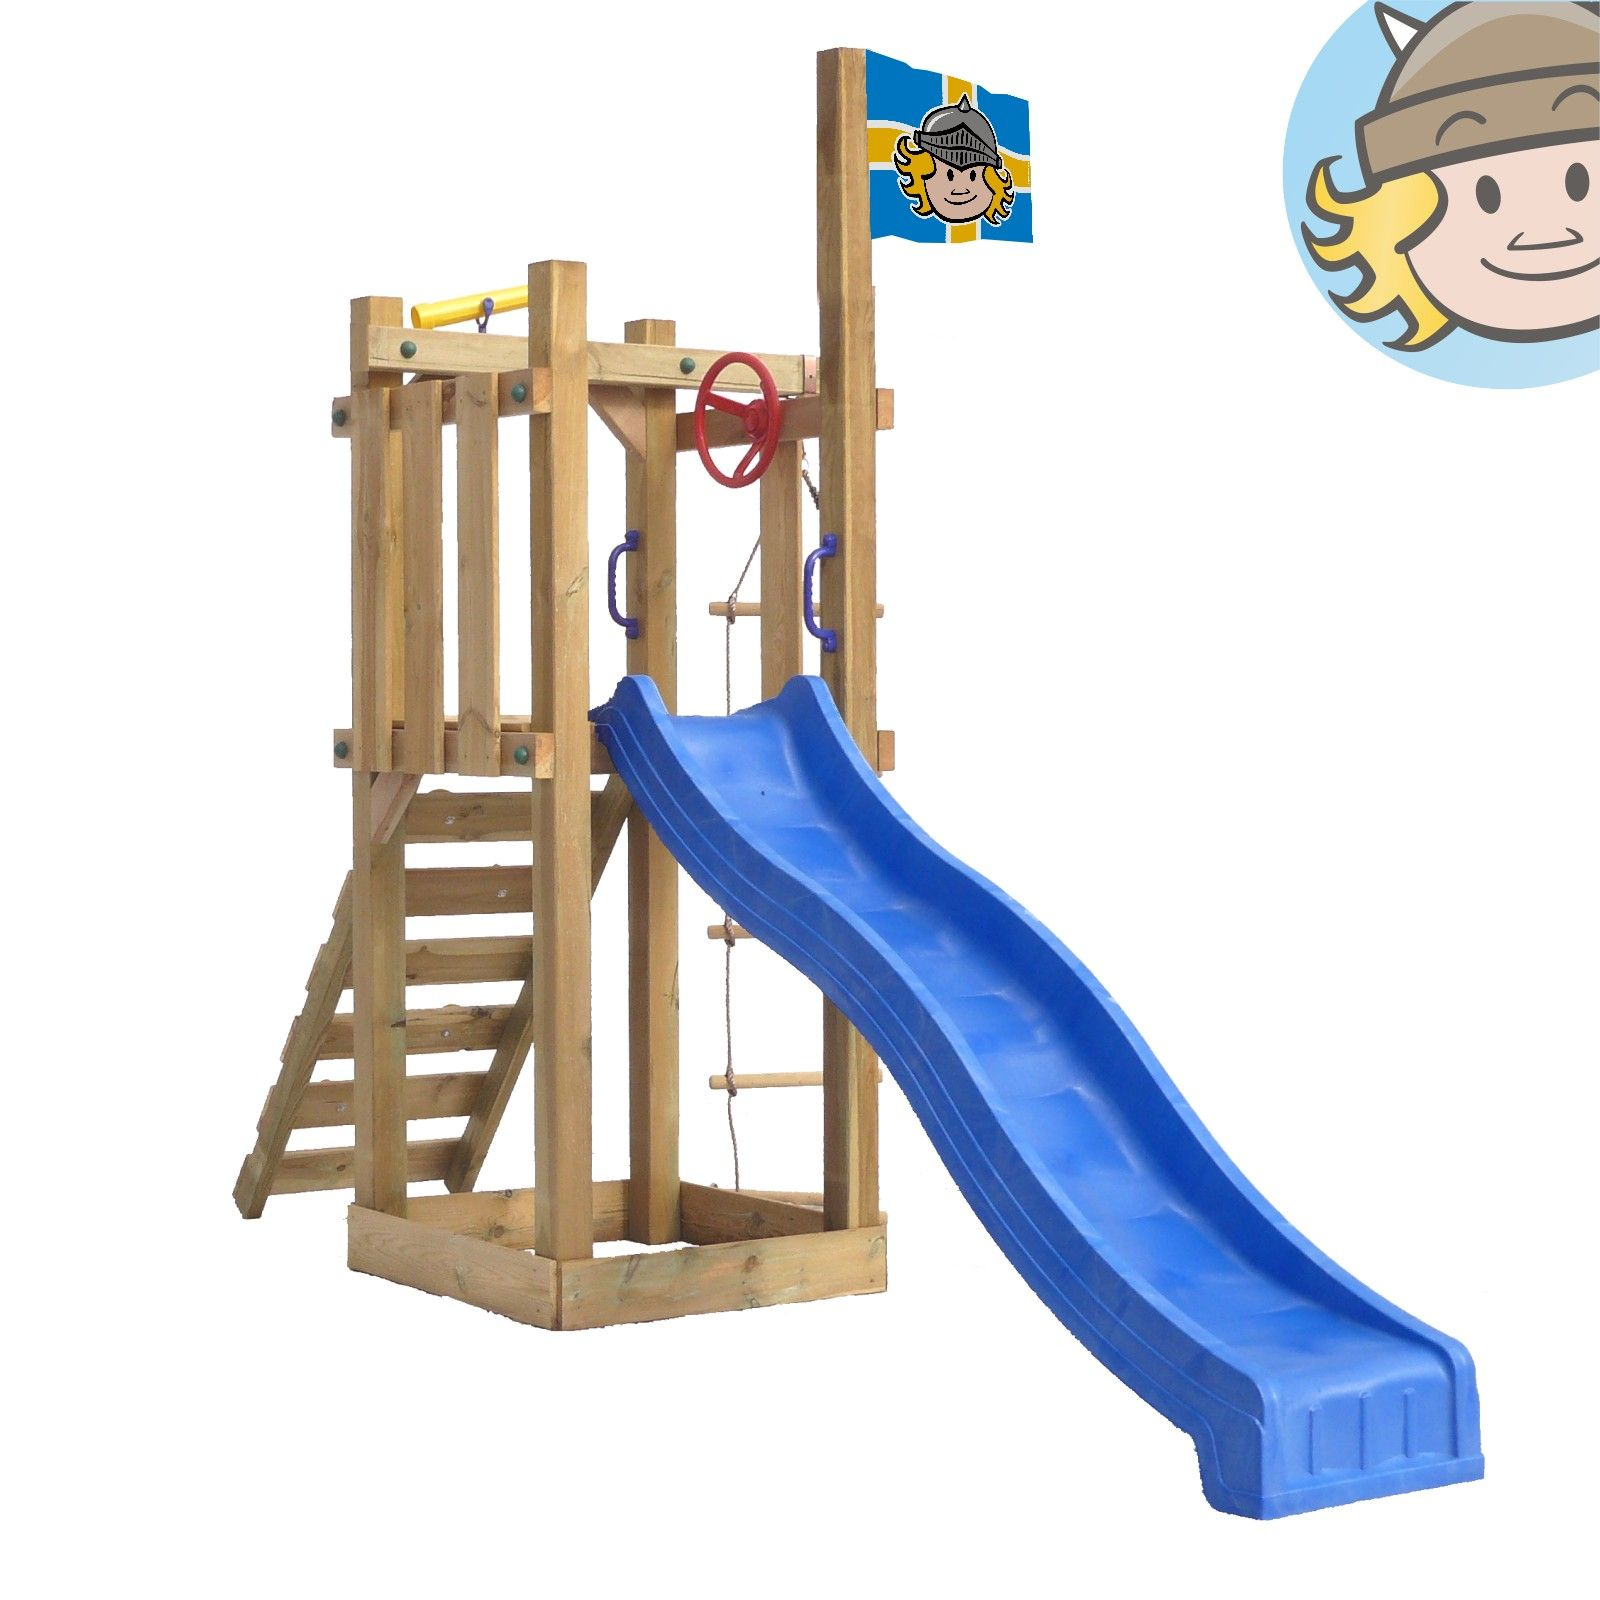 WICKEY Castle Minodor Climbing Frame Slide sandbox wooden Set